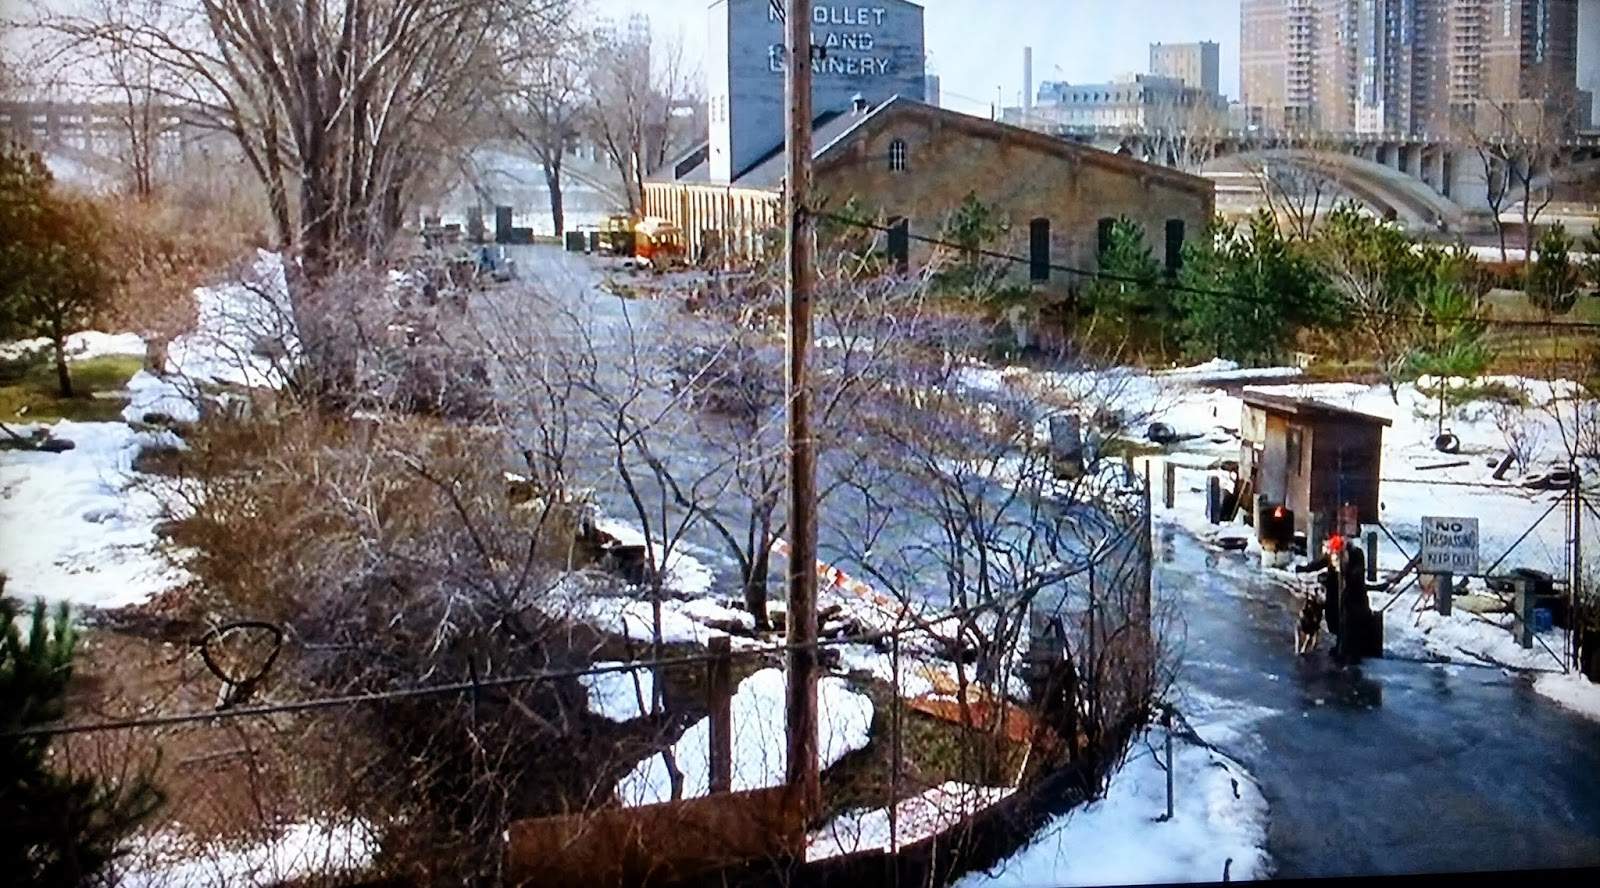 Rehab addict 1904 mansion - Located At 40 Power Street In Minneapolis Minnesota This Is The Location In Jingle All The Way Where All Of The Fake Santas Hid The Bootleg Gifts